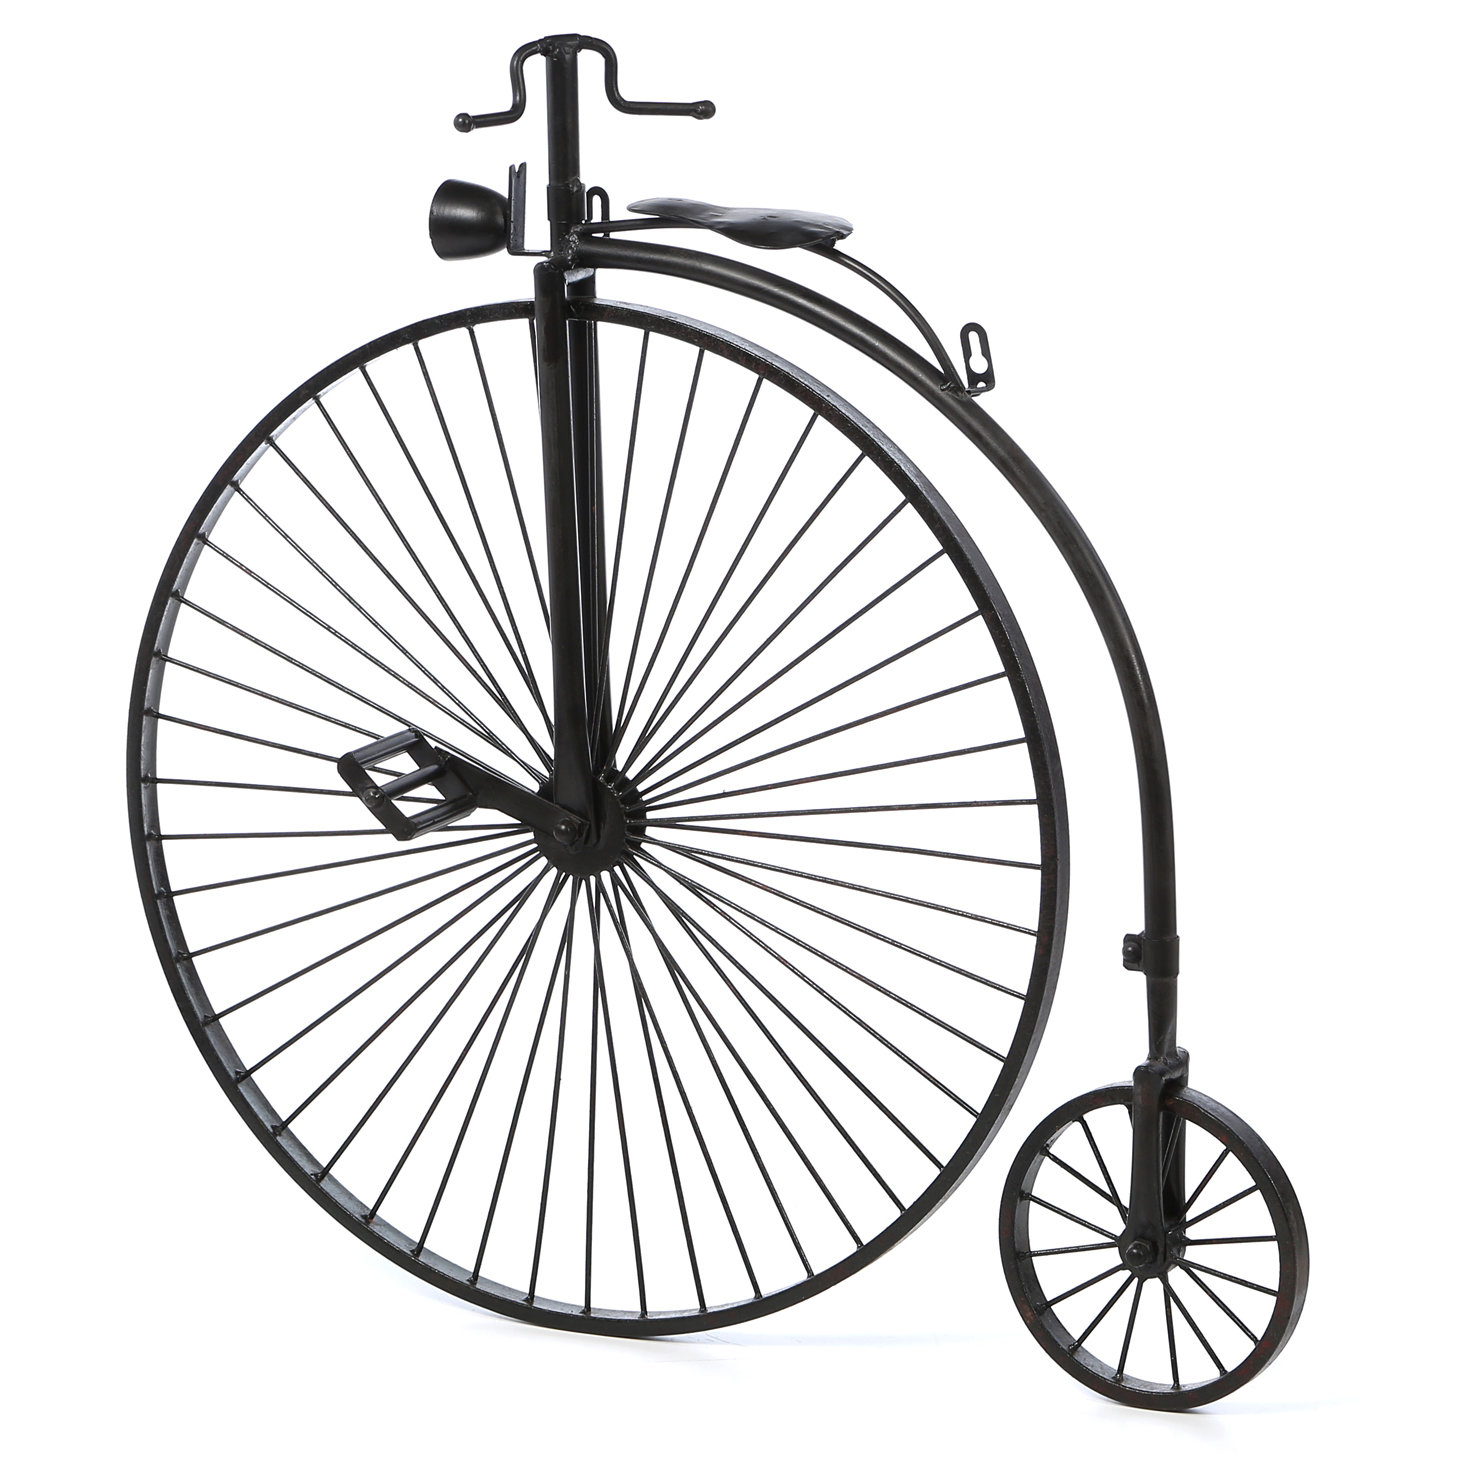 Joss & Main Pertaining To Fashionable Metal Bicycle Wall Decor (View 8 of 20)